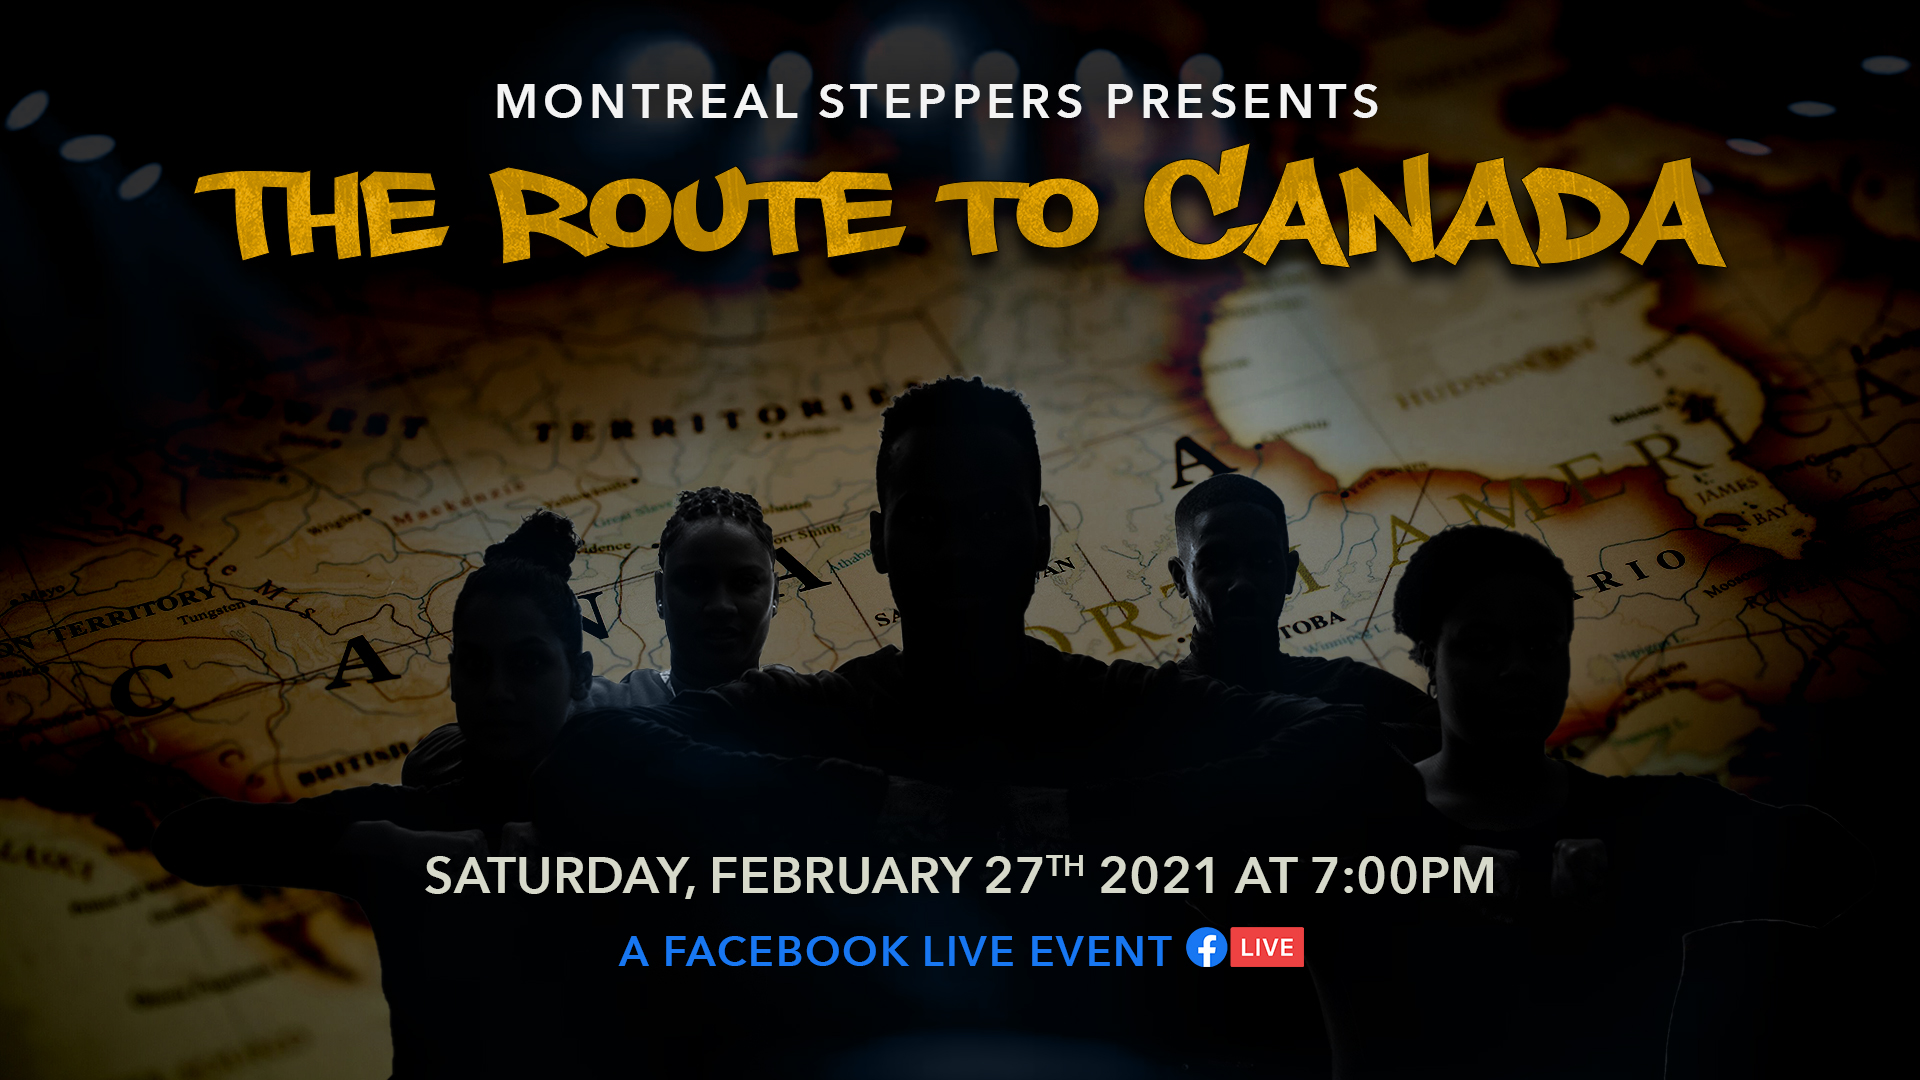 The Route to Canada